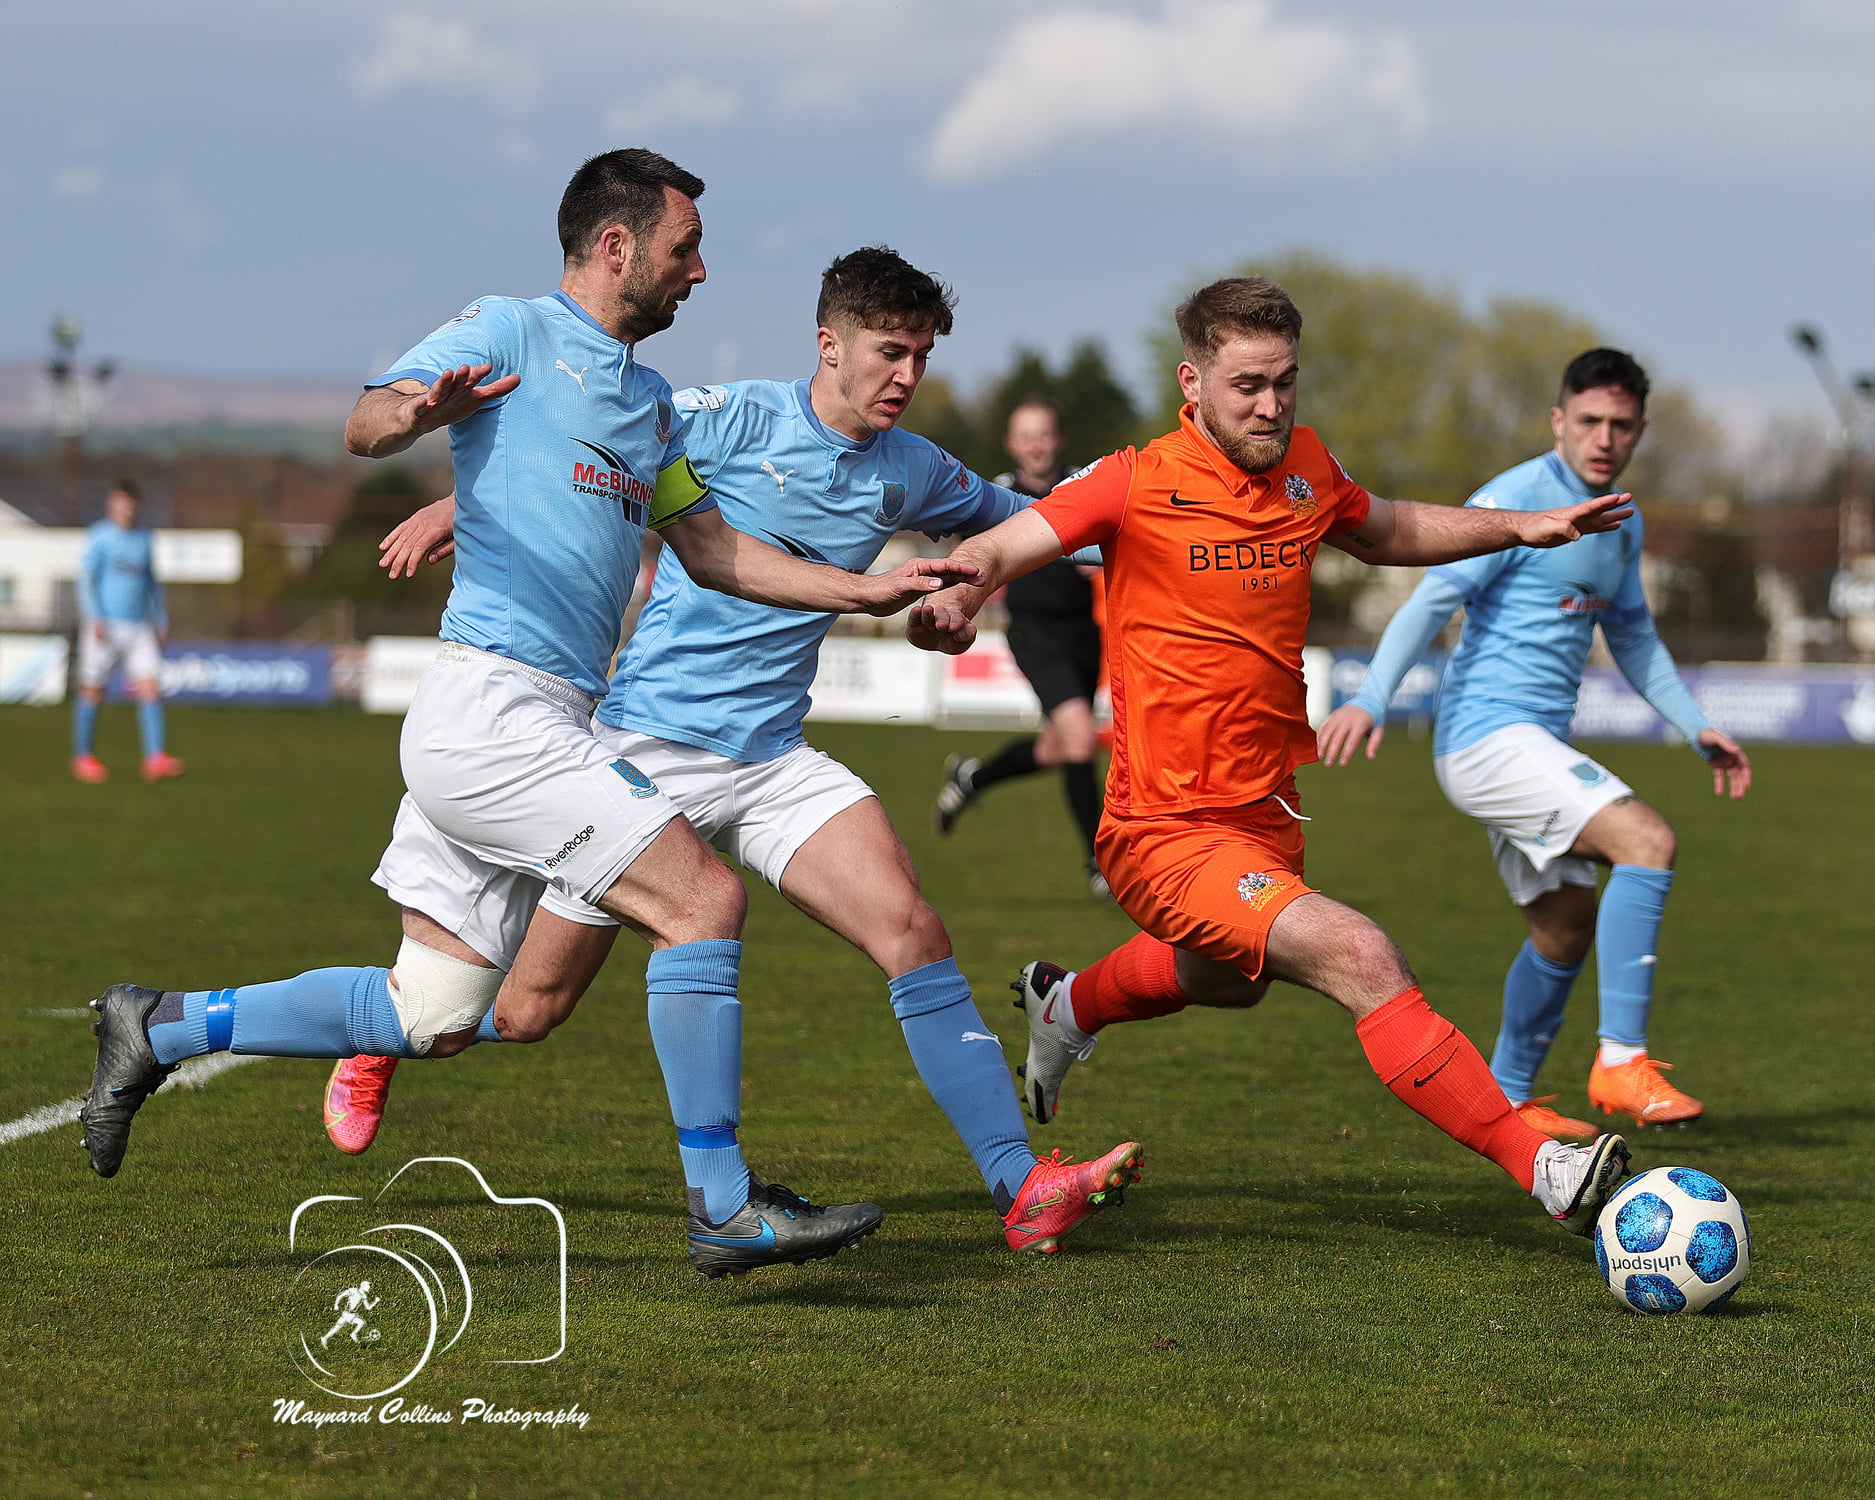 MATCH REPORT: Ballymena United 3-1 Glenavon